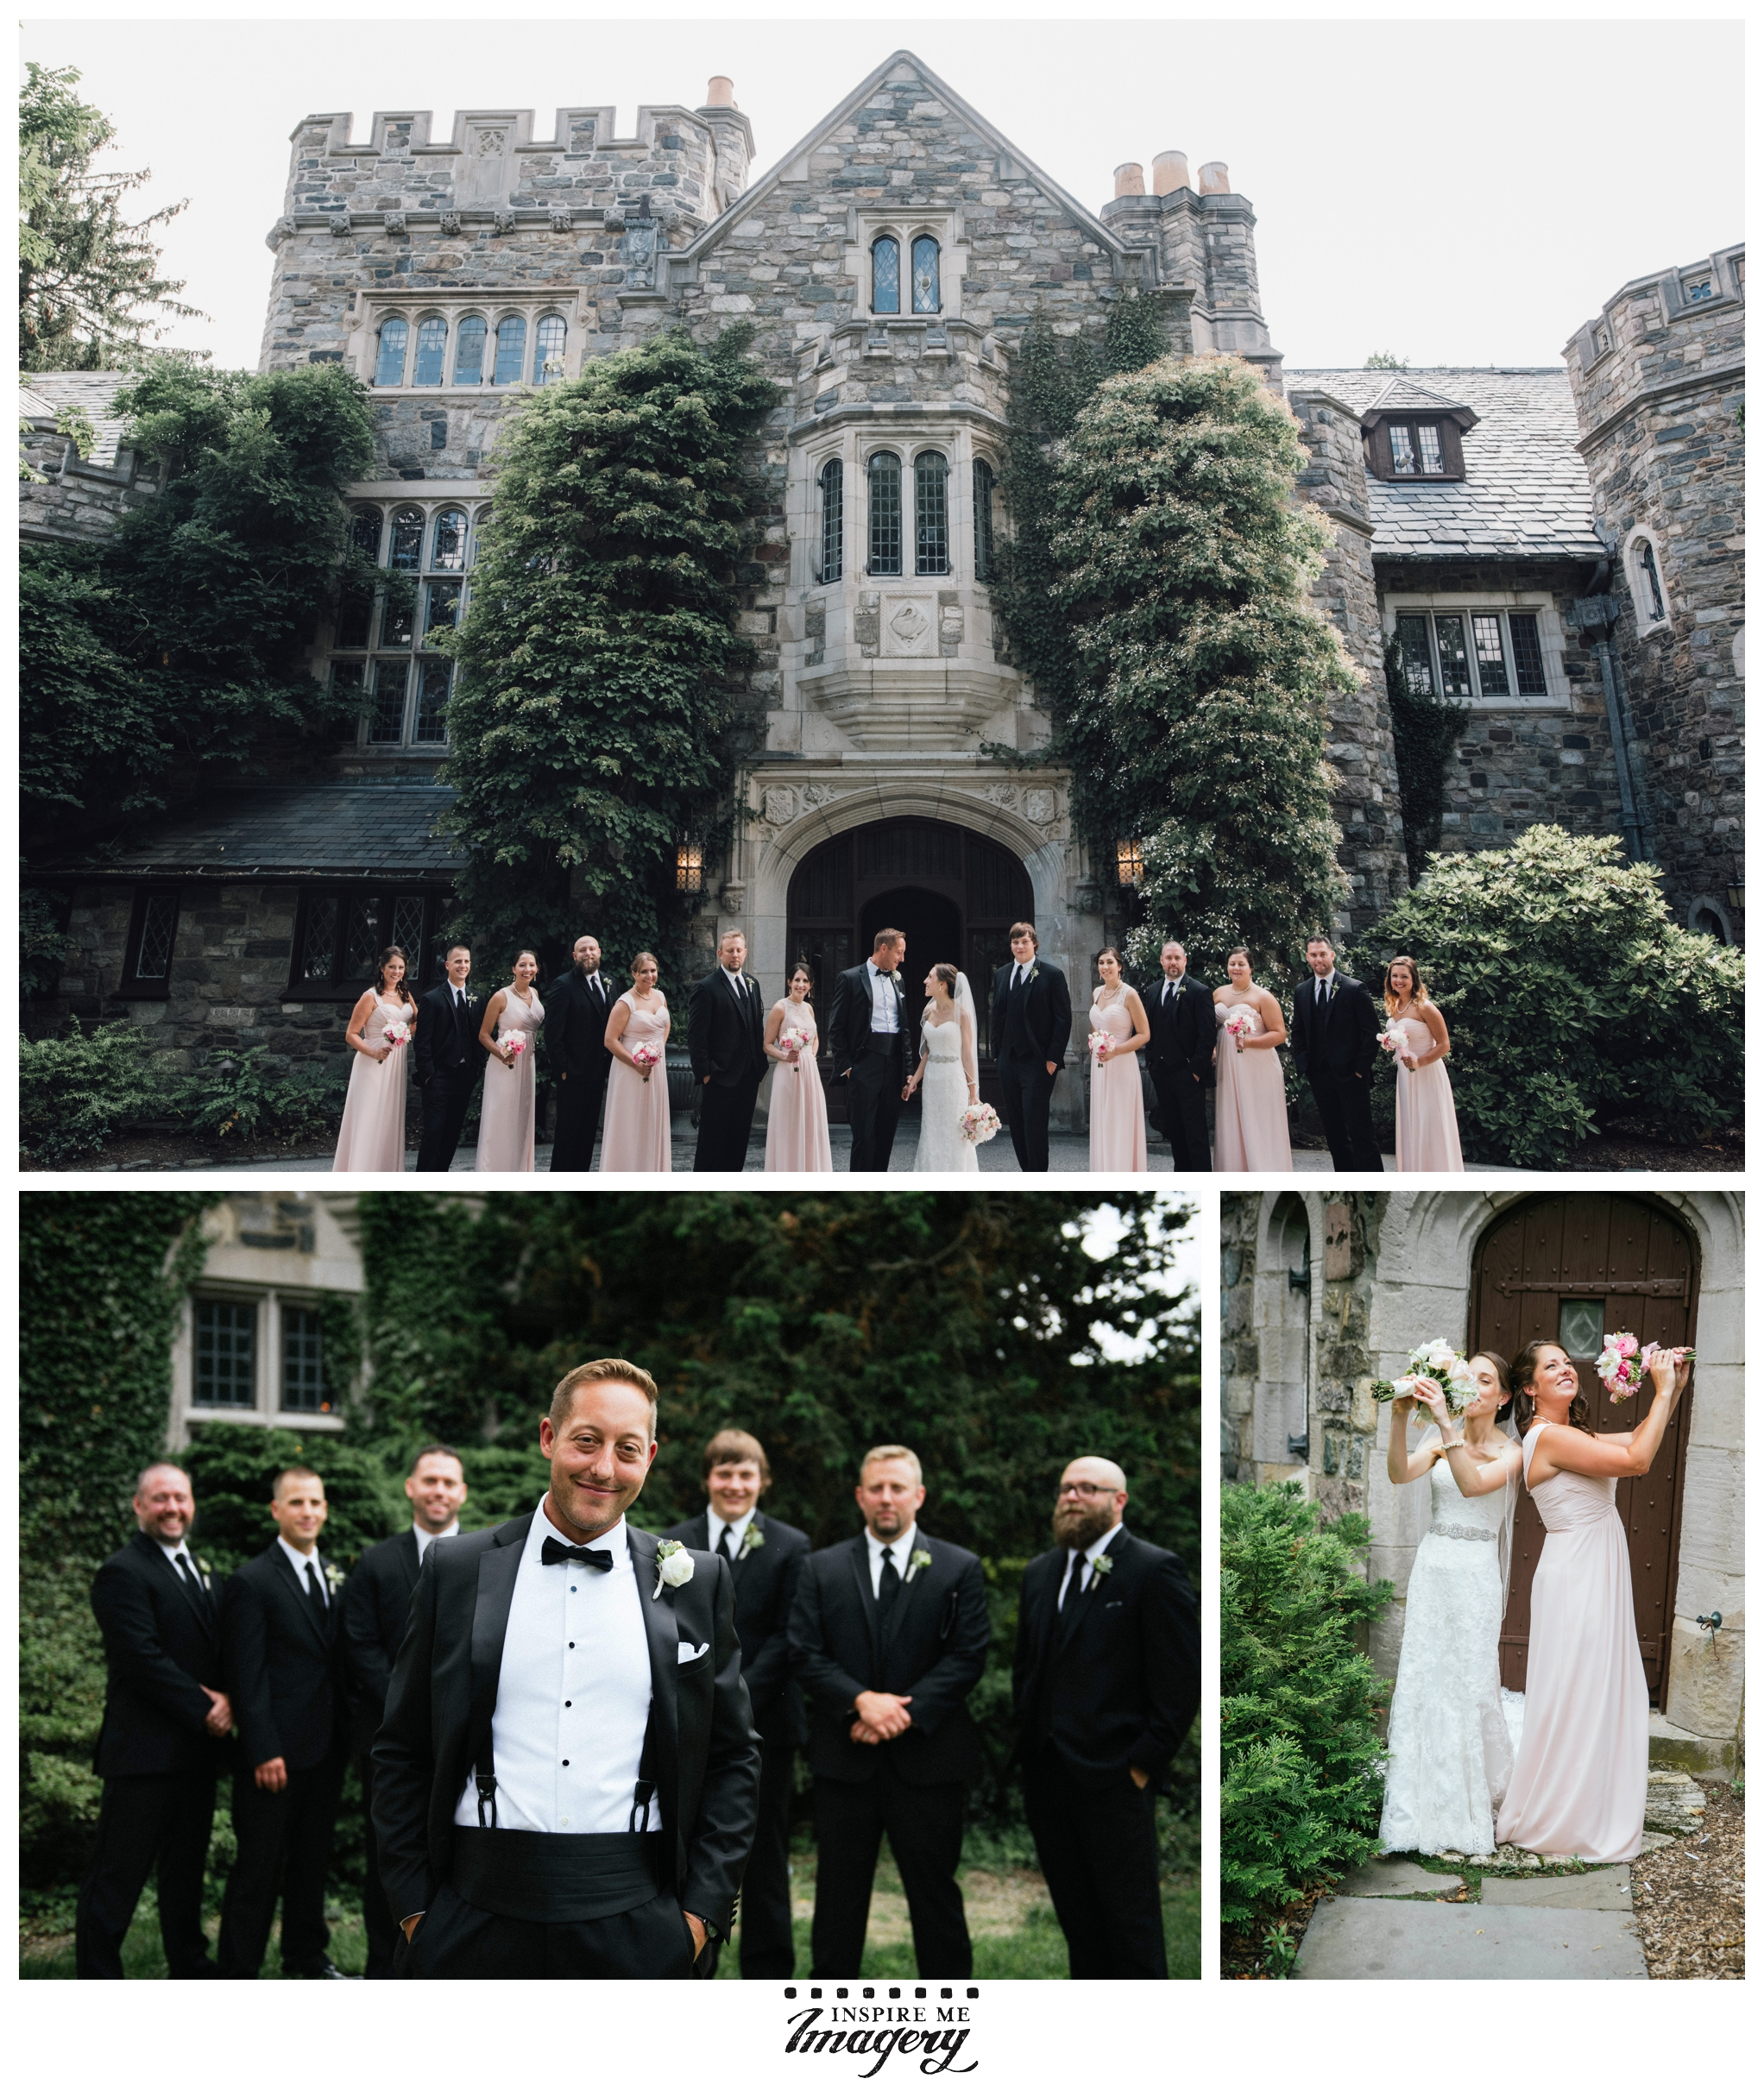 Wedding party portraits in front of Skylands Manor. They were really a fun, wonderful group of people. The pink gowns contrast beautifully with the dark suits.